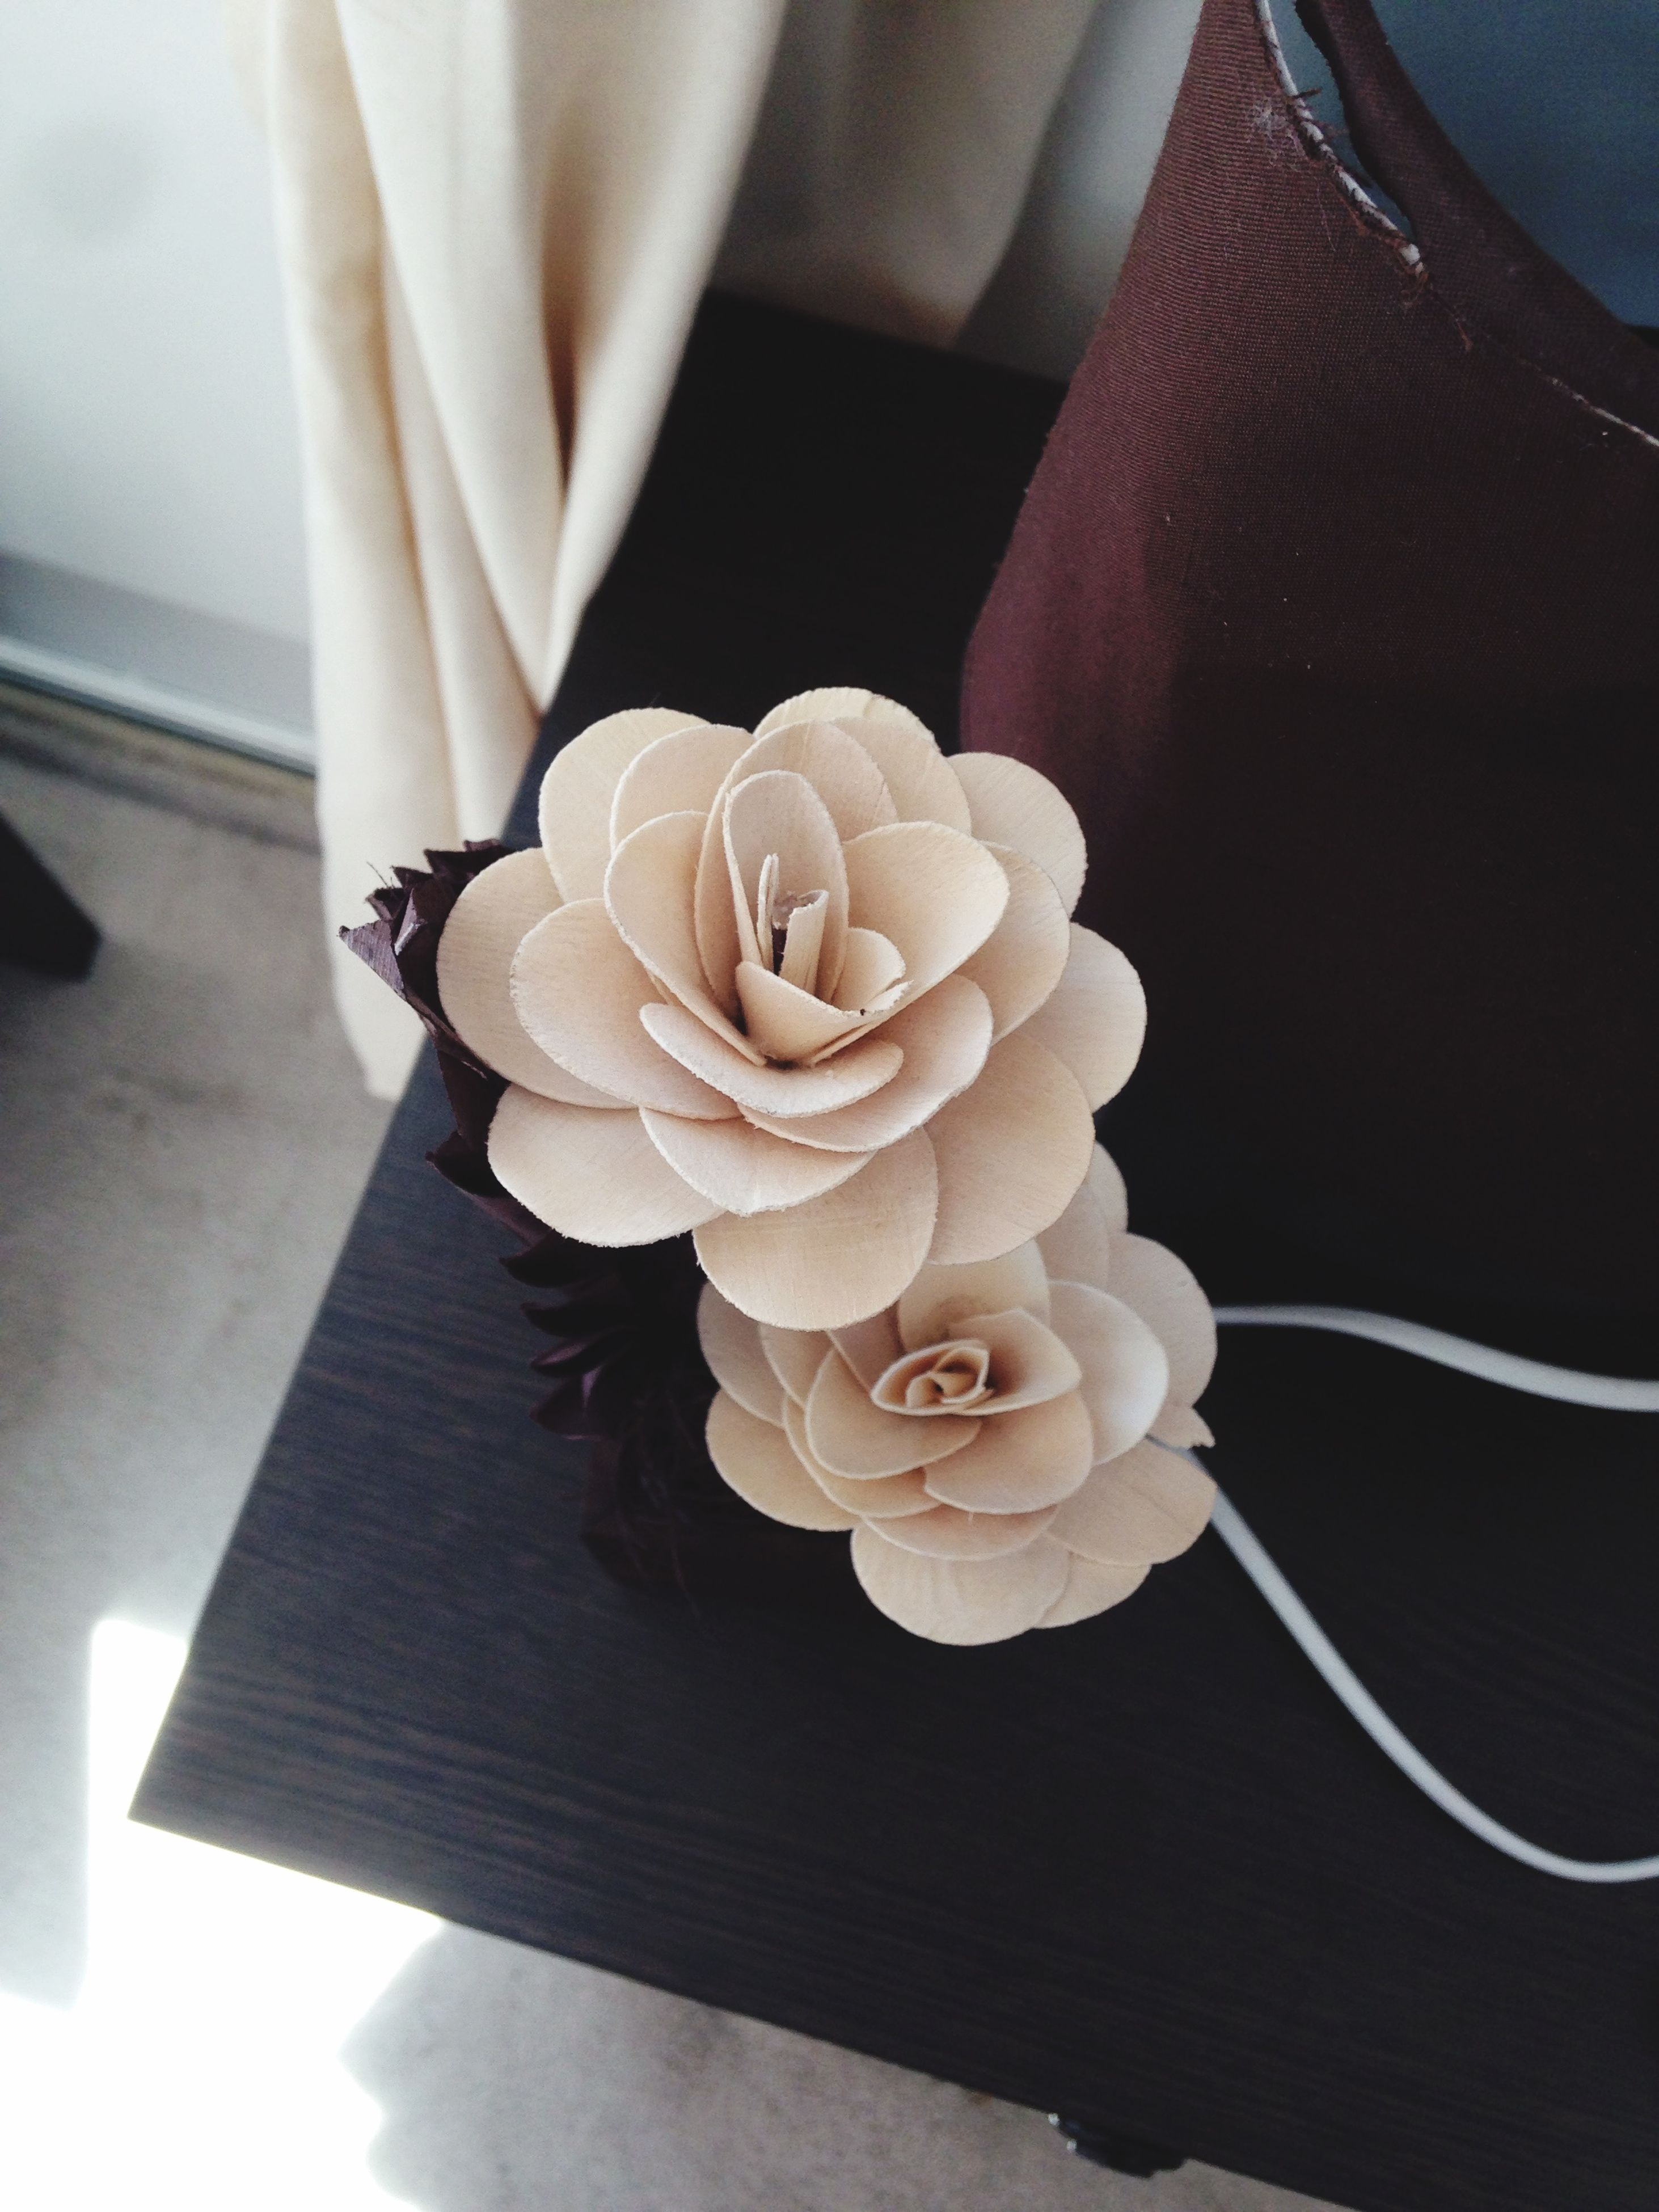 indoors, flower, table, freshness, petal, fragility, rose - flower, flower head, vase, close-up, high angle view, home interior, rose, focus on foreground, bouquet, white color, still life, beauty in nature, decoration, elegance